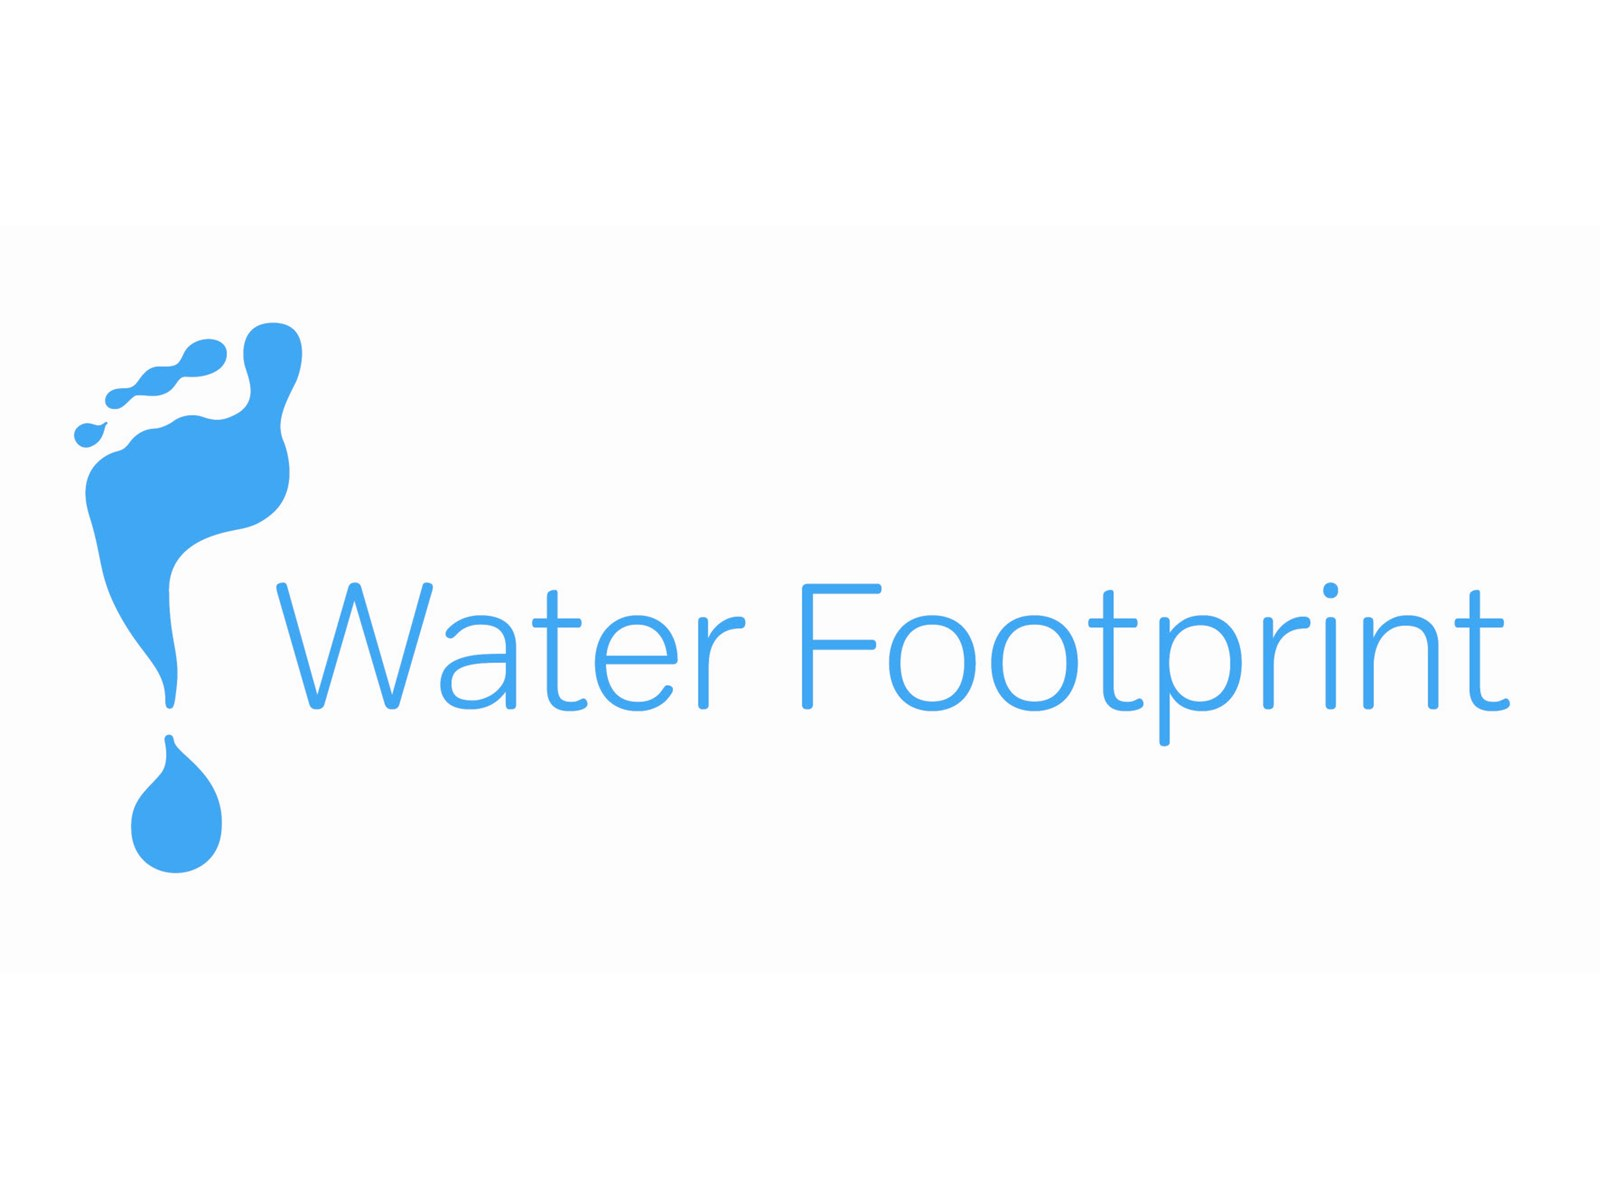 Water partners breathe new life into the Water Footprint